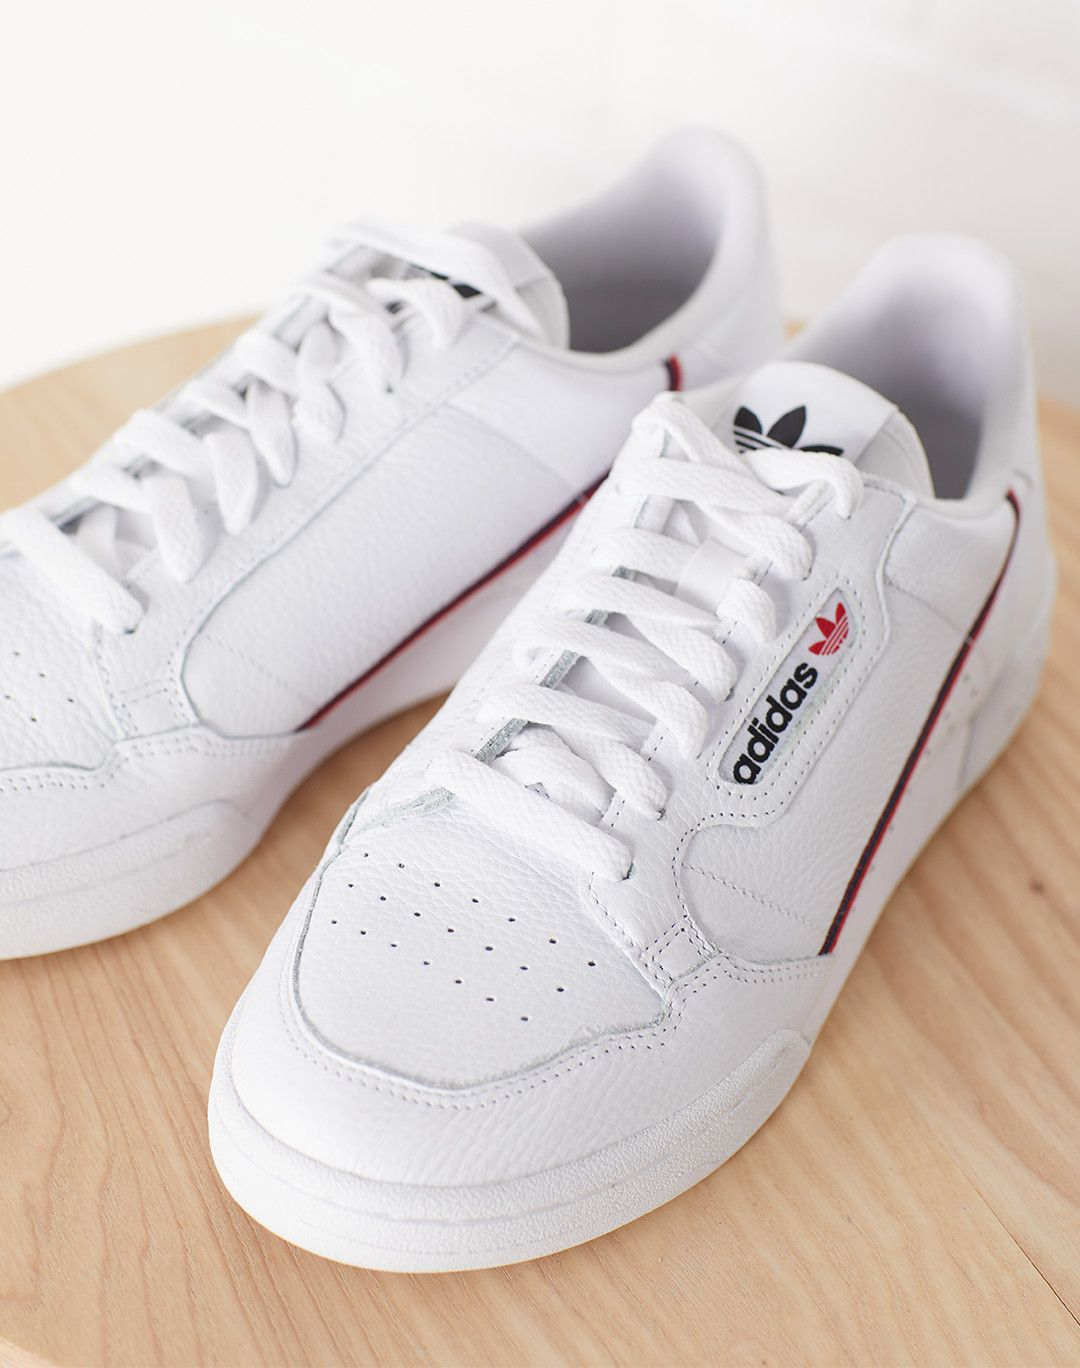 adidas continental 80 vs stan smith